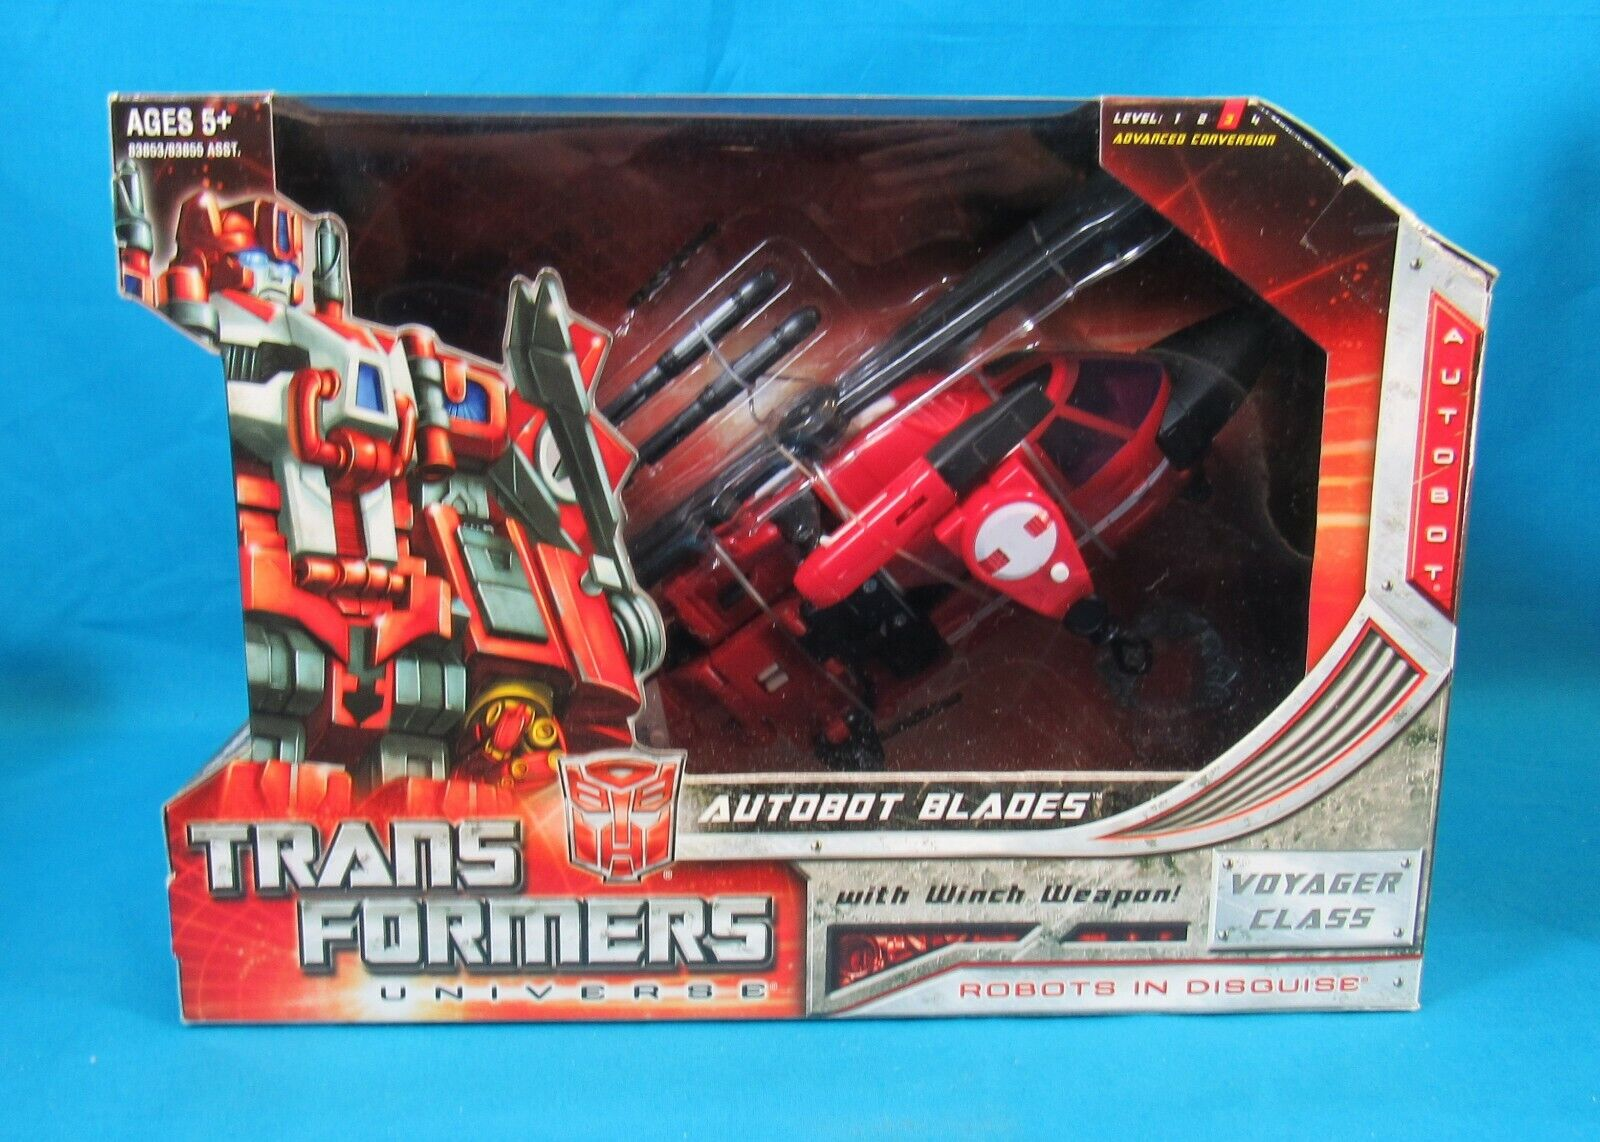 Hasbro Transformers Universe Voyager classe Blades 2008 nuovo in scatola Sealed